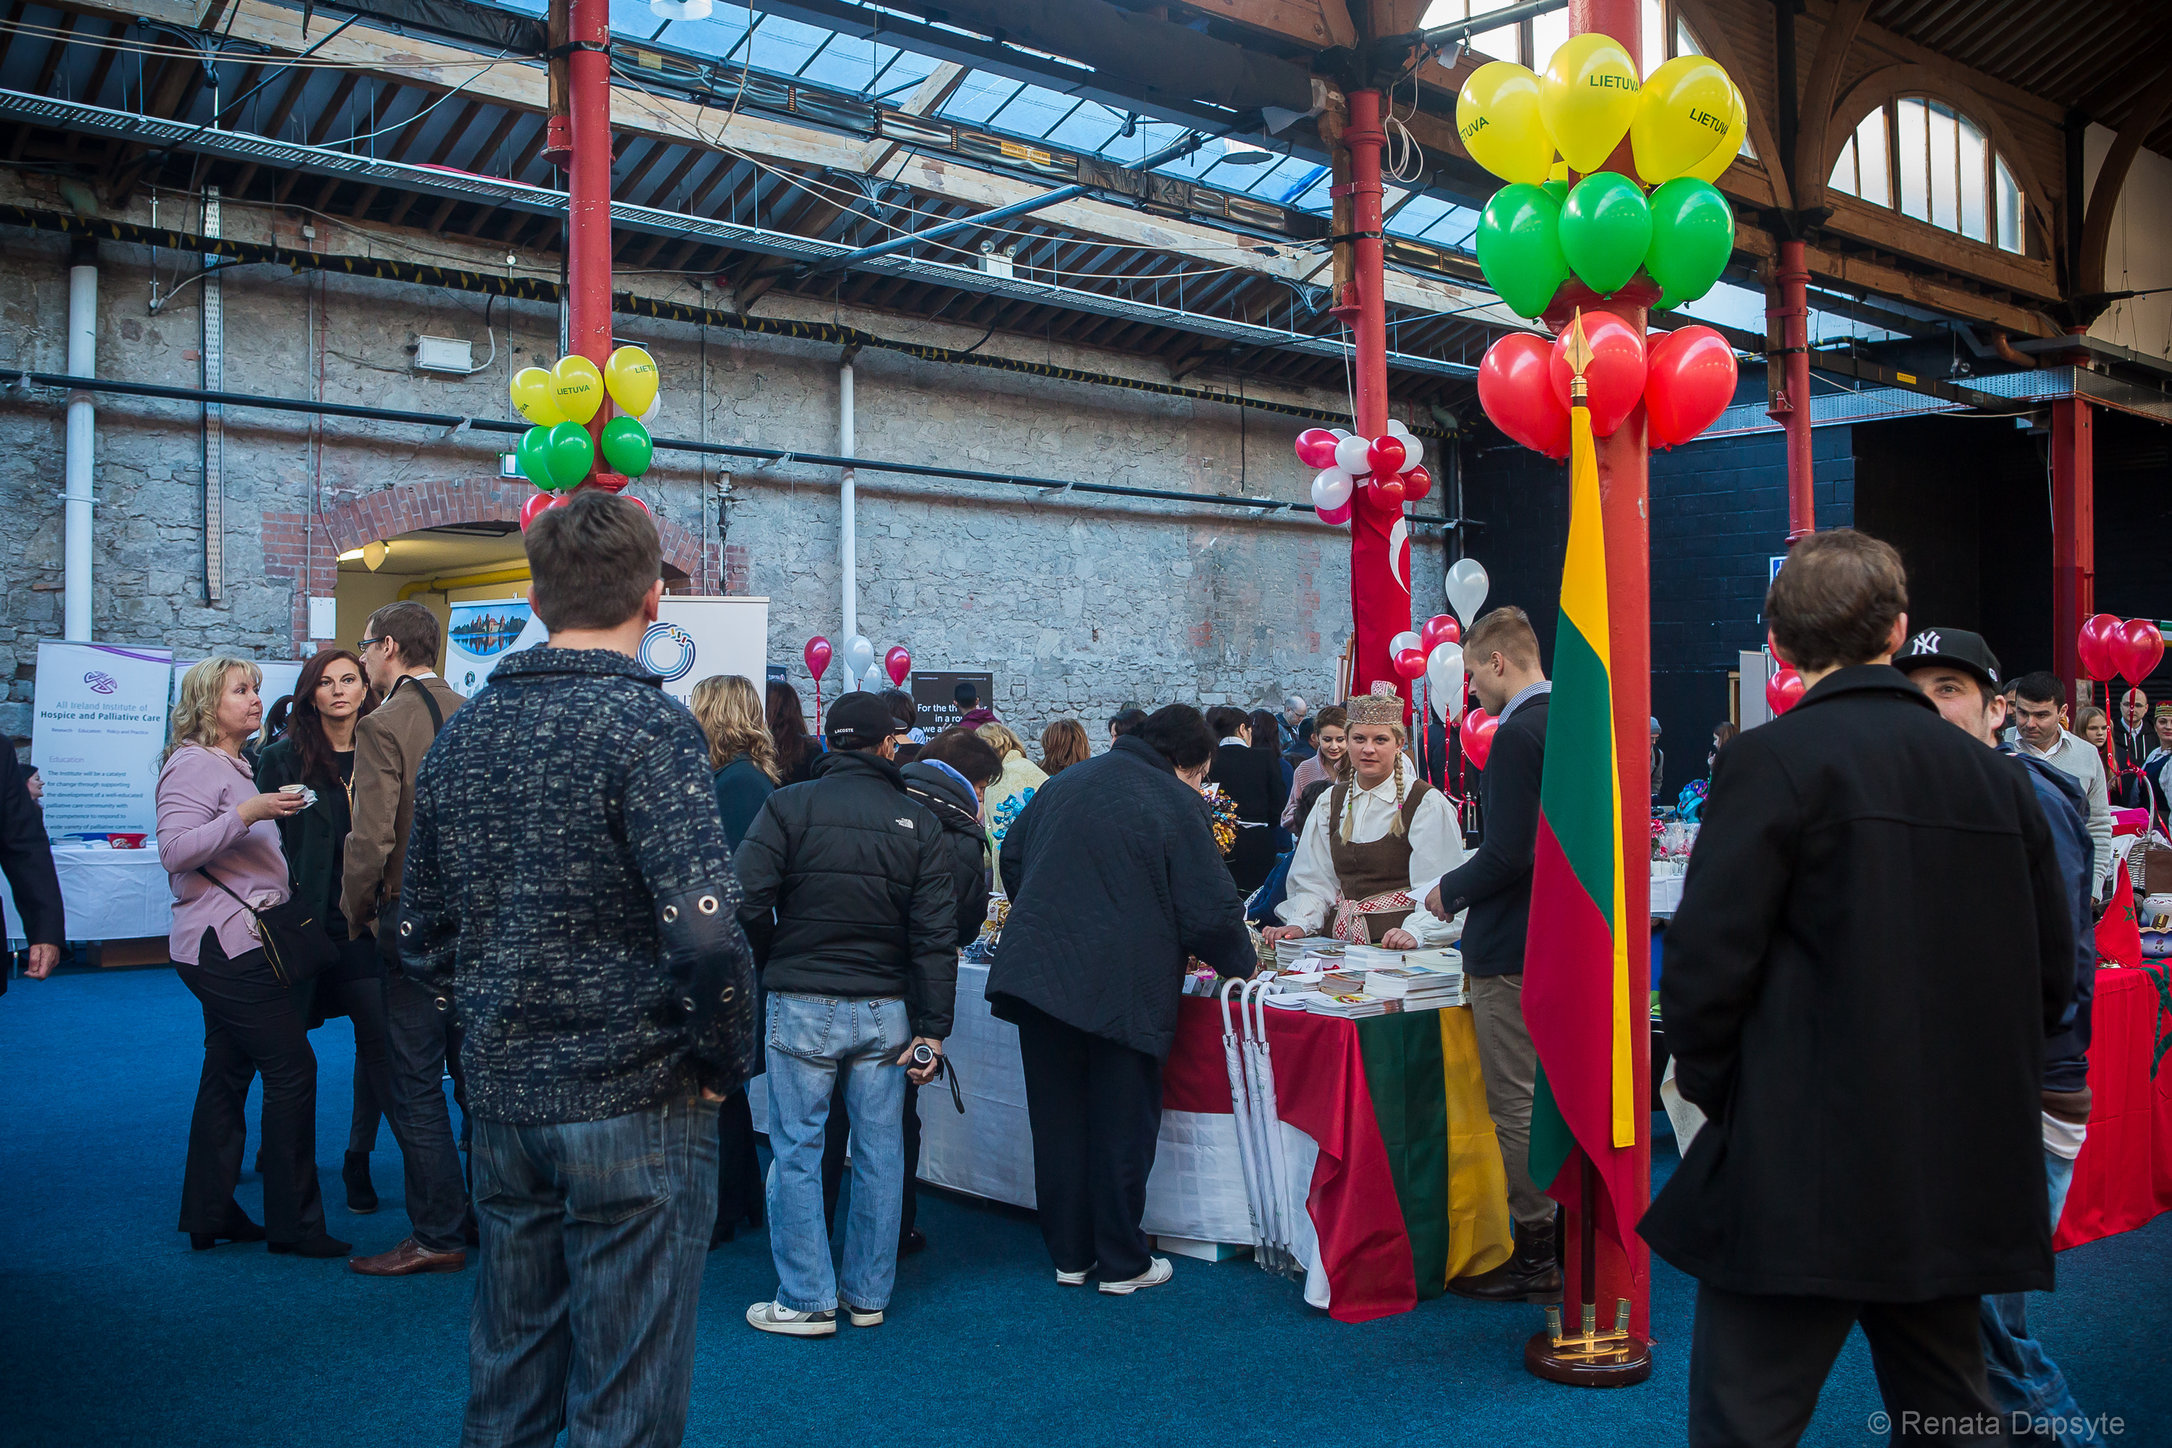 002_International Charity Bazaar Dublin 2013.JPG